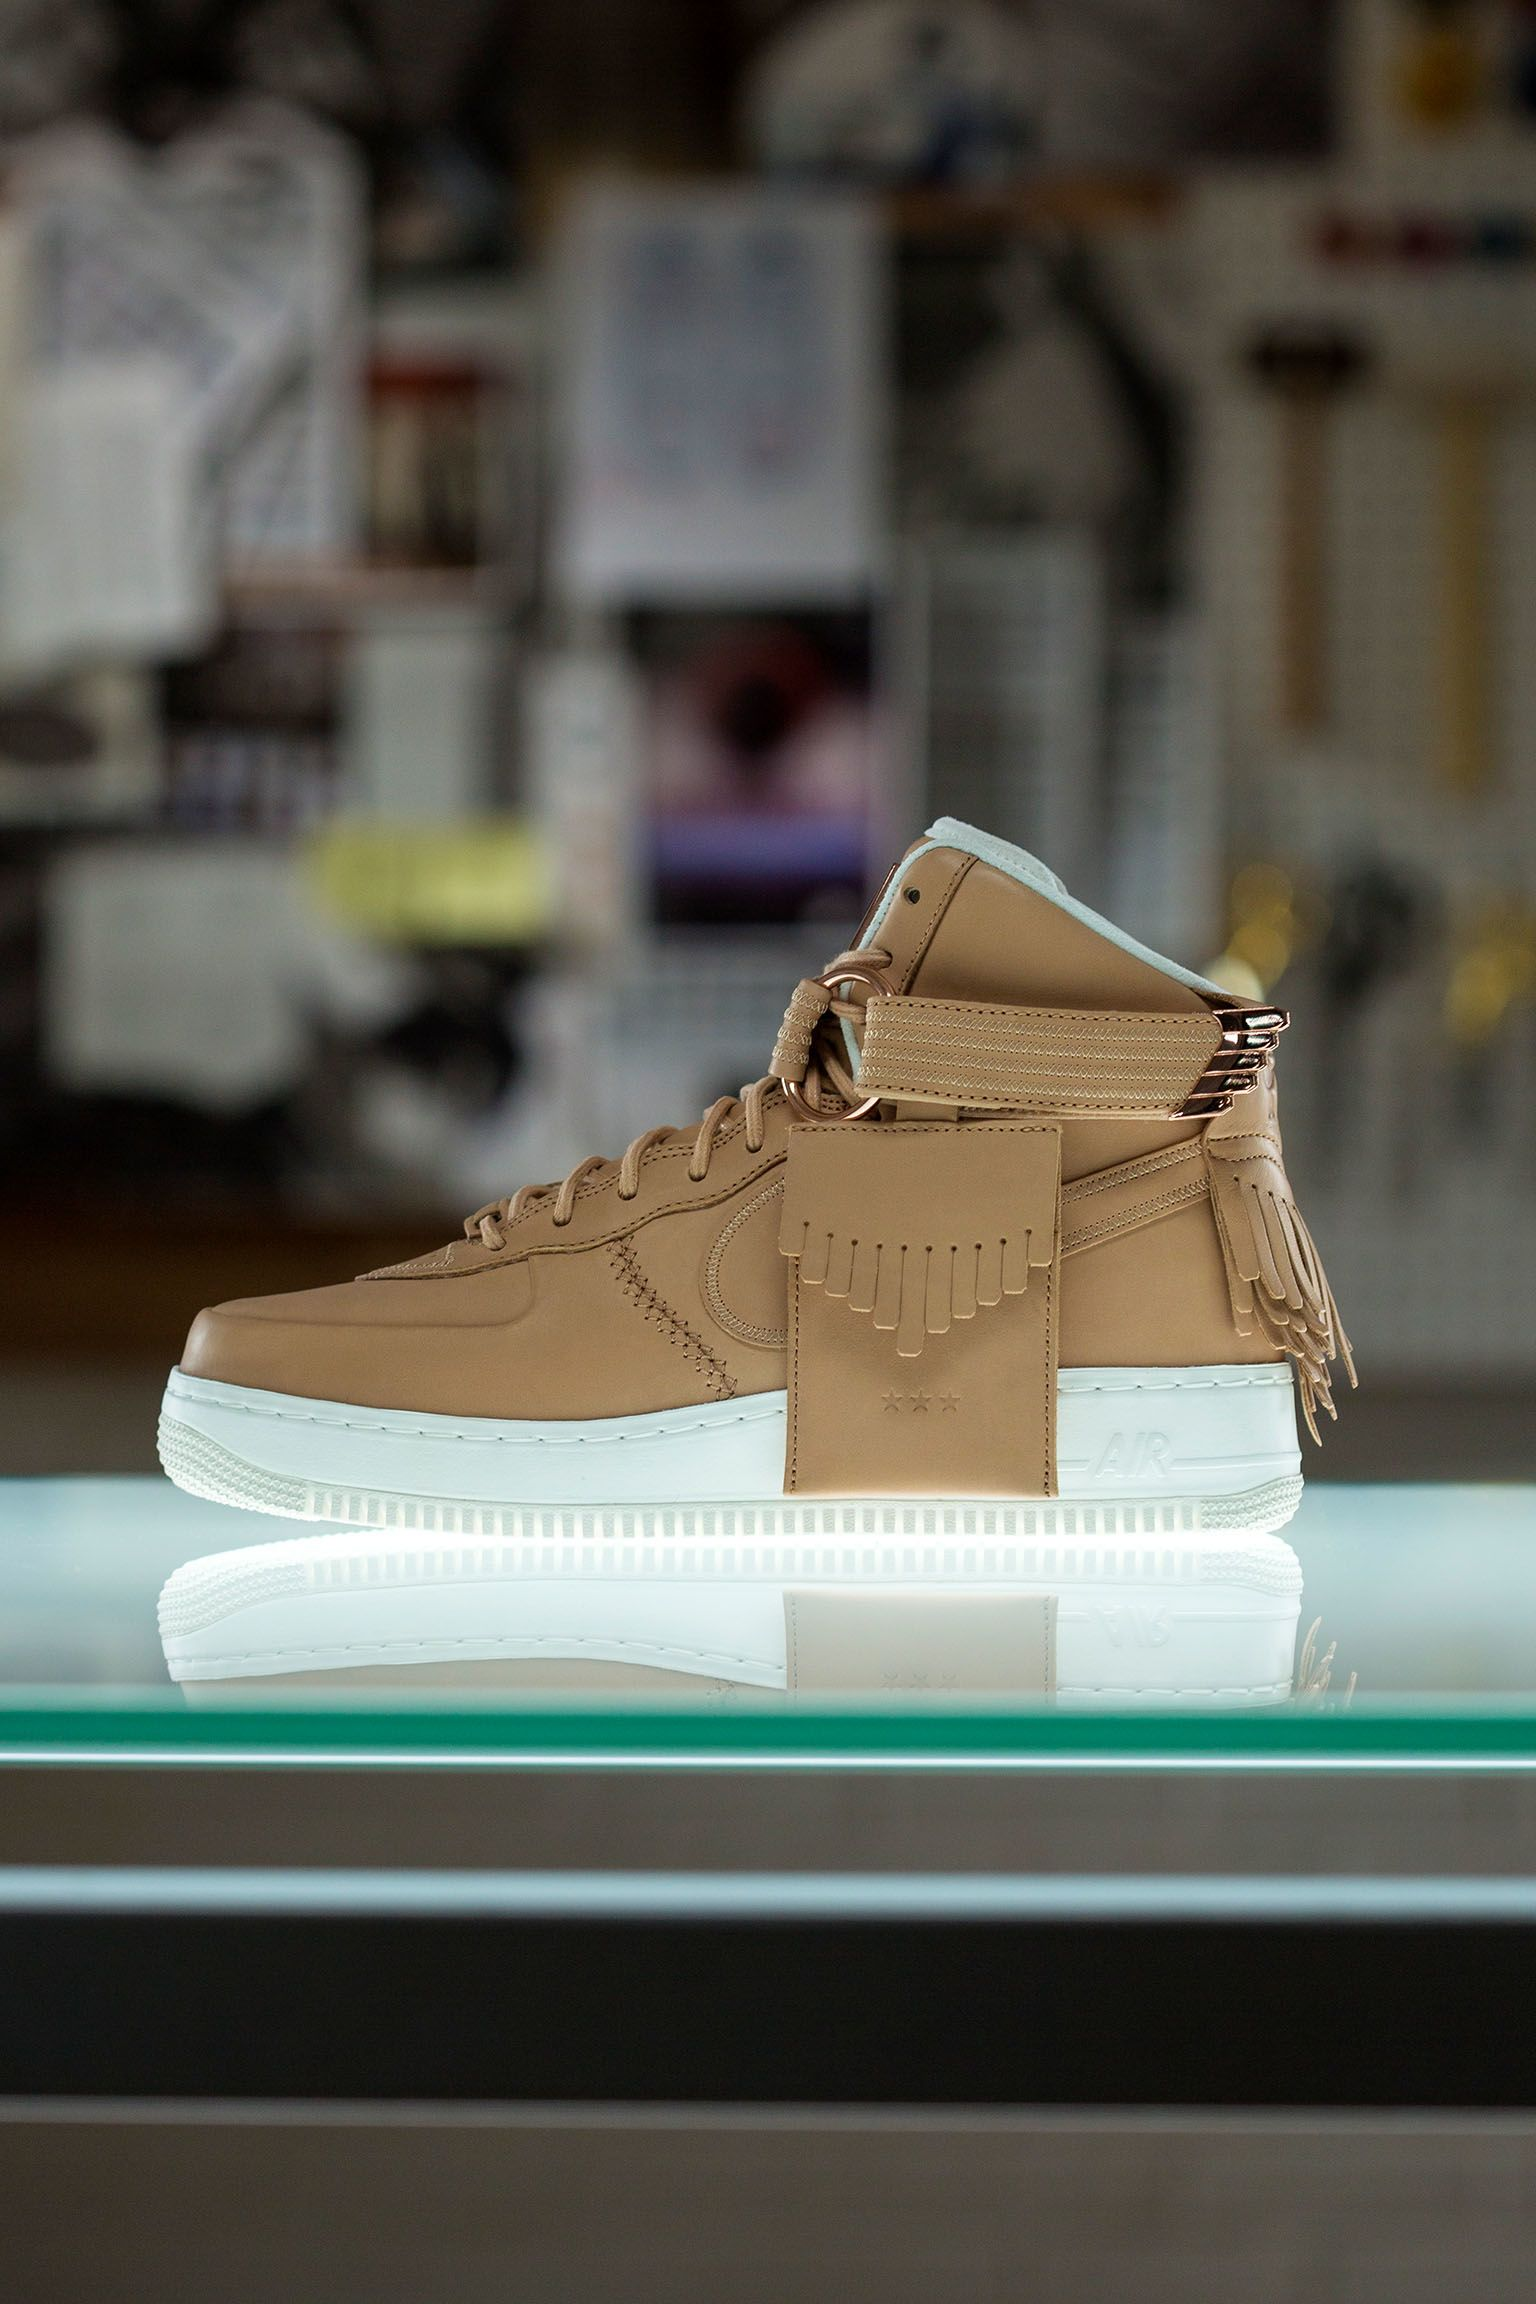 Dentro la scarpa: Nike Air Force 1 High Sport Luxury